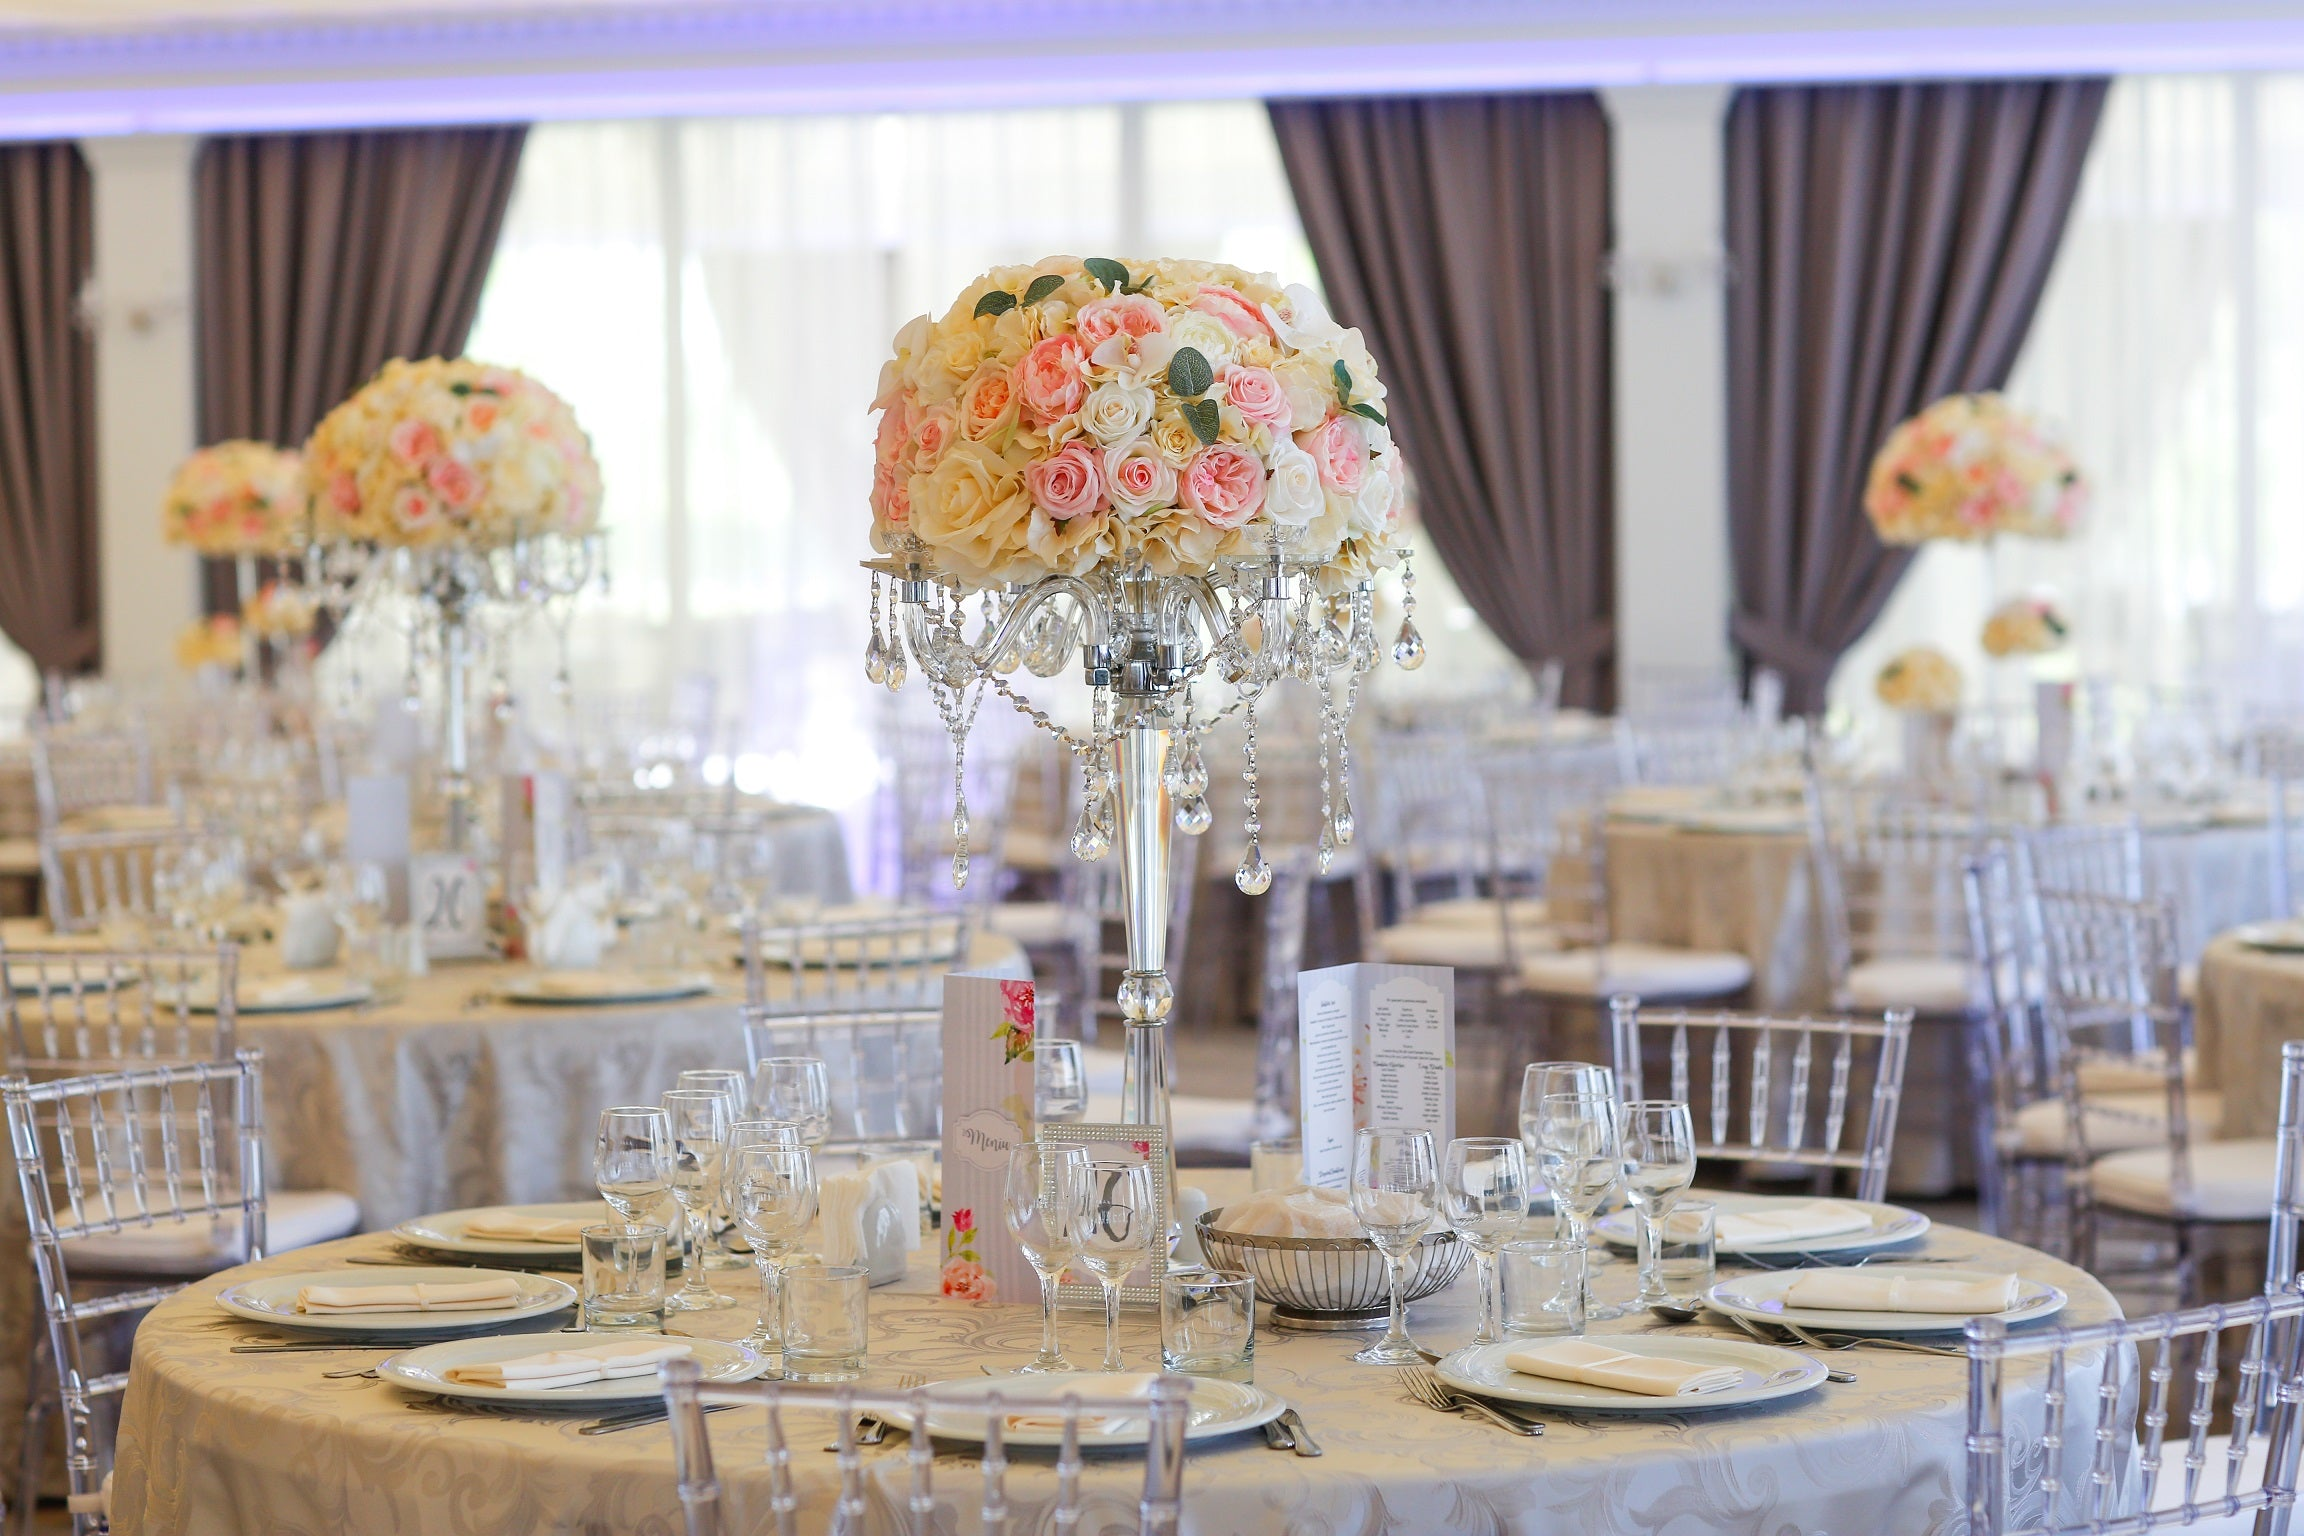 Banquet table with tablecloth and glass flower vase